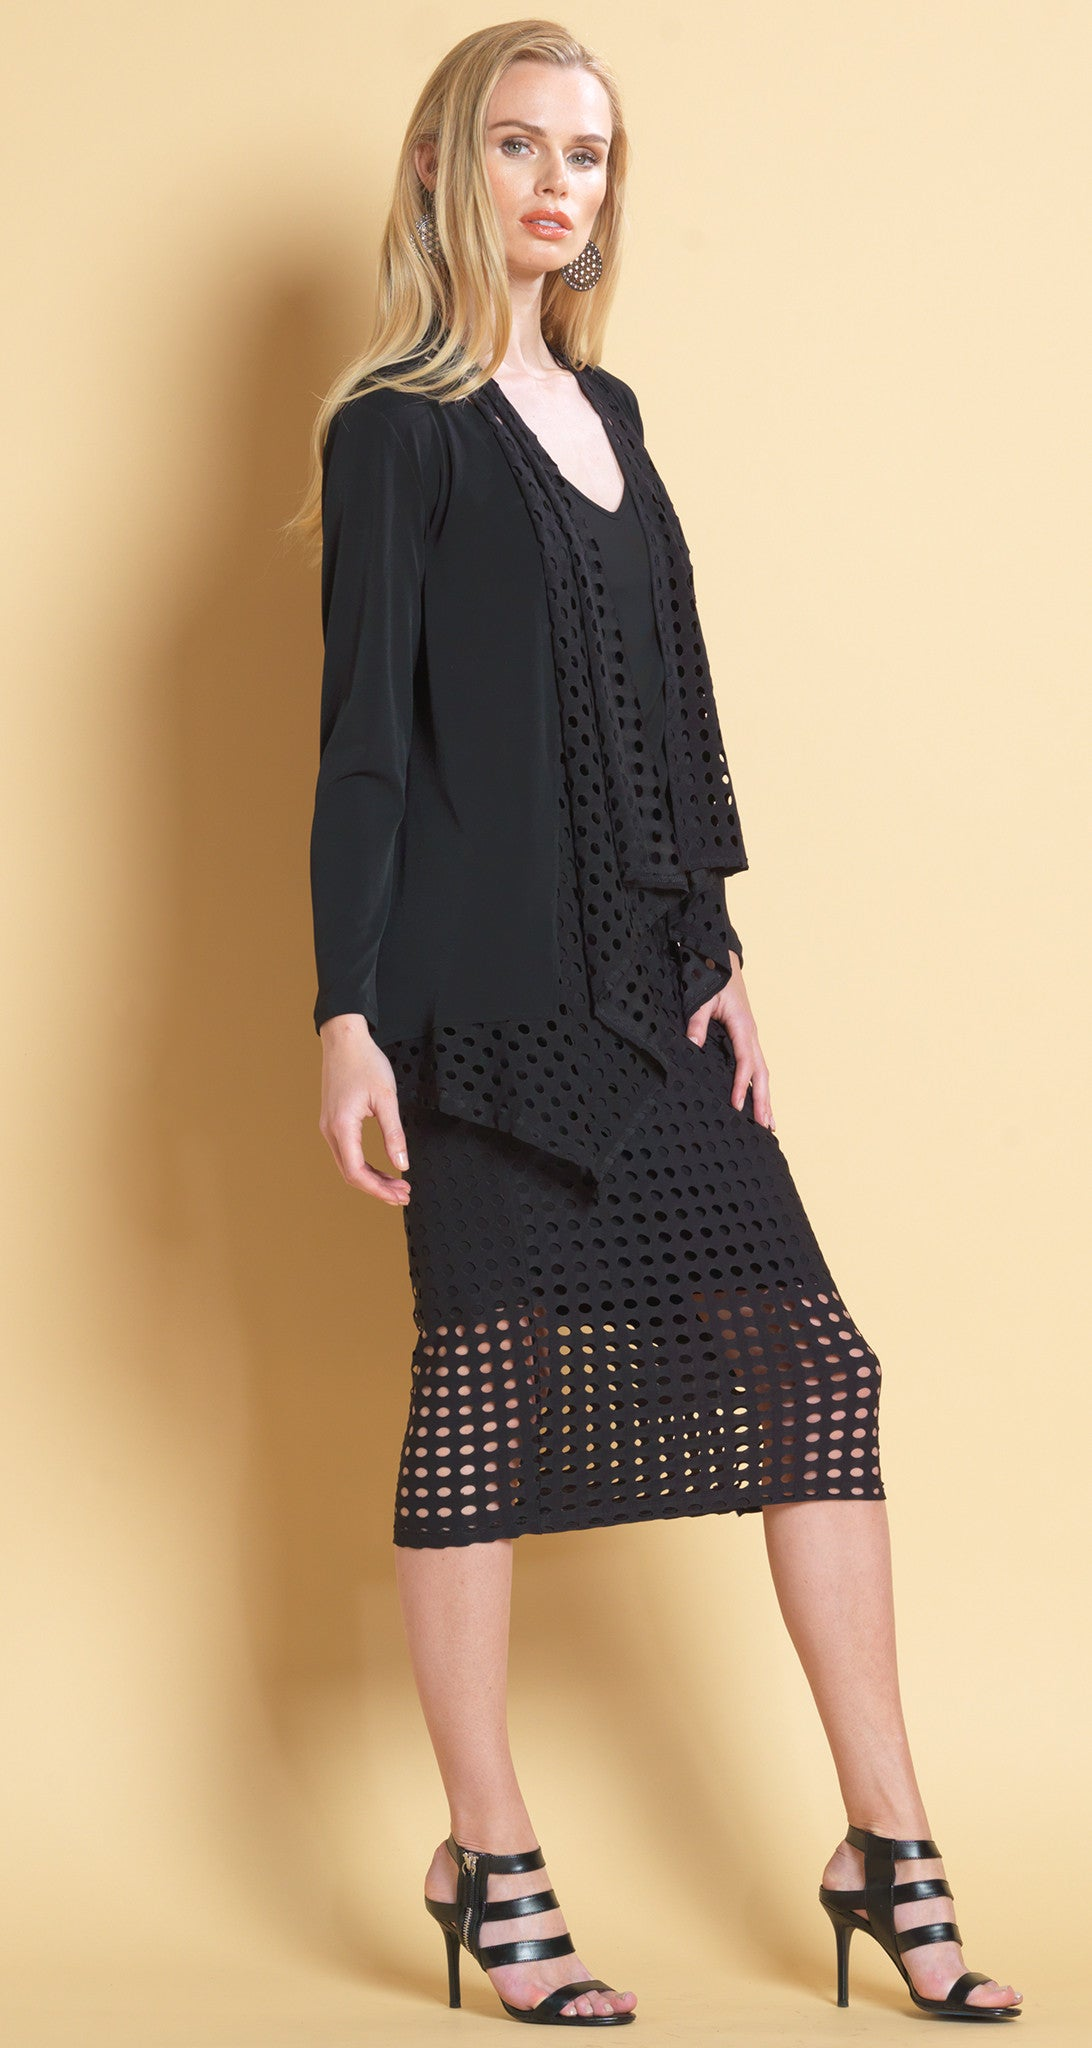 Perforated Scarf Trimmed Cardigan - Clara Sunwoo